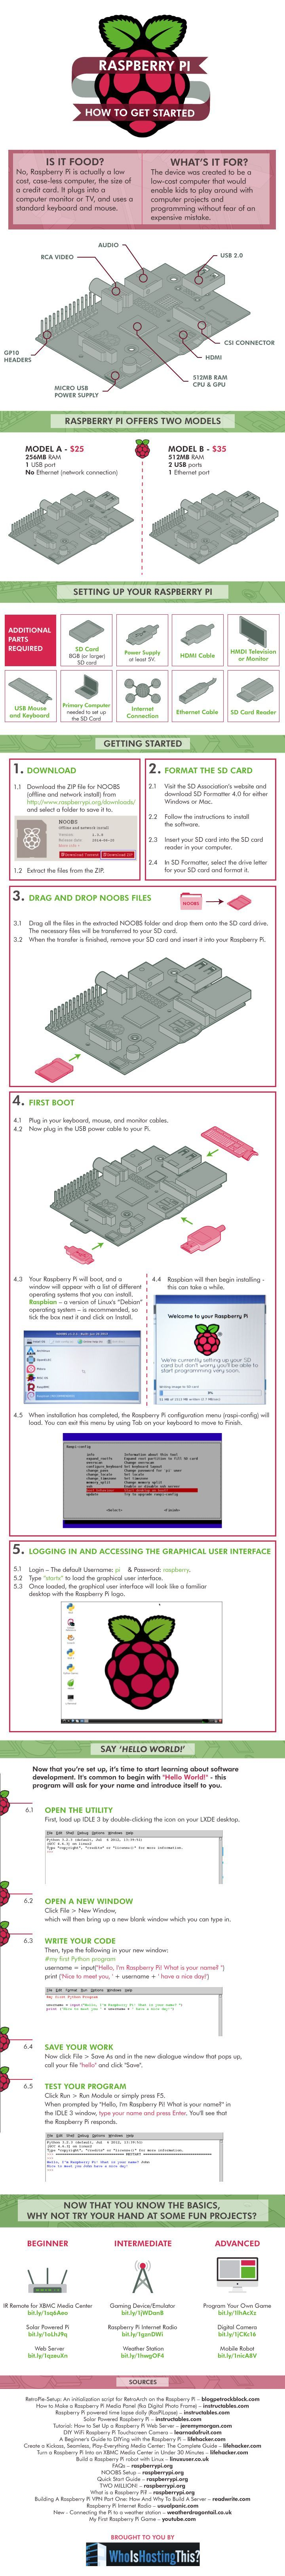 Raspberry Pi: How To Get Started (Models A & B) - Imgur  - Full Selection of Pi Products: http://www.mcmelectronics.com/content/en-US/raspberry-pi